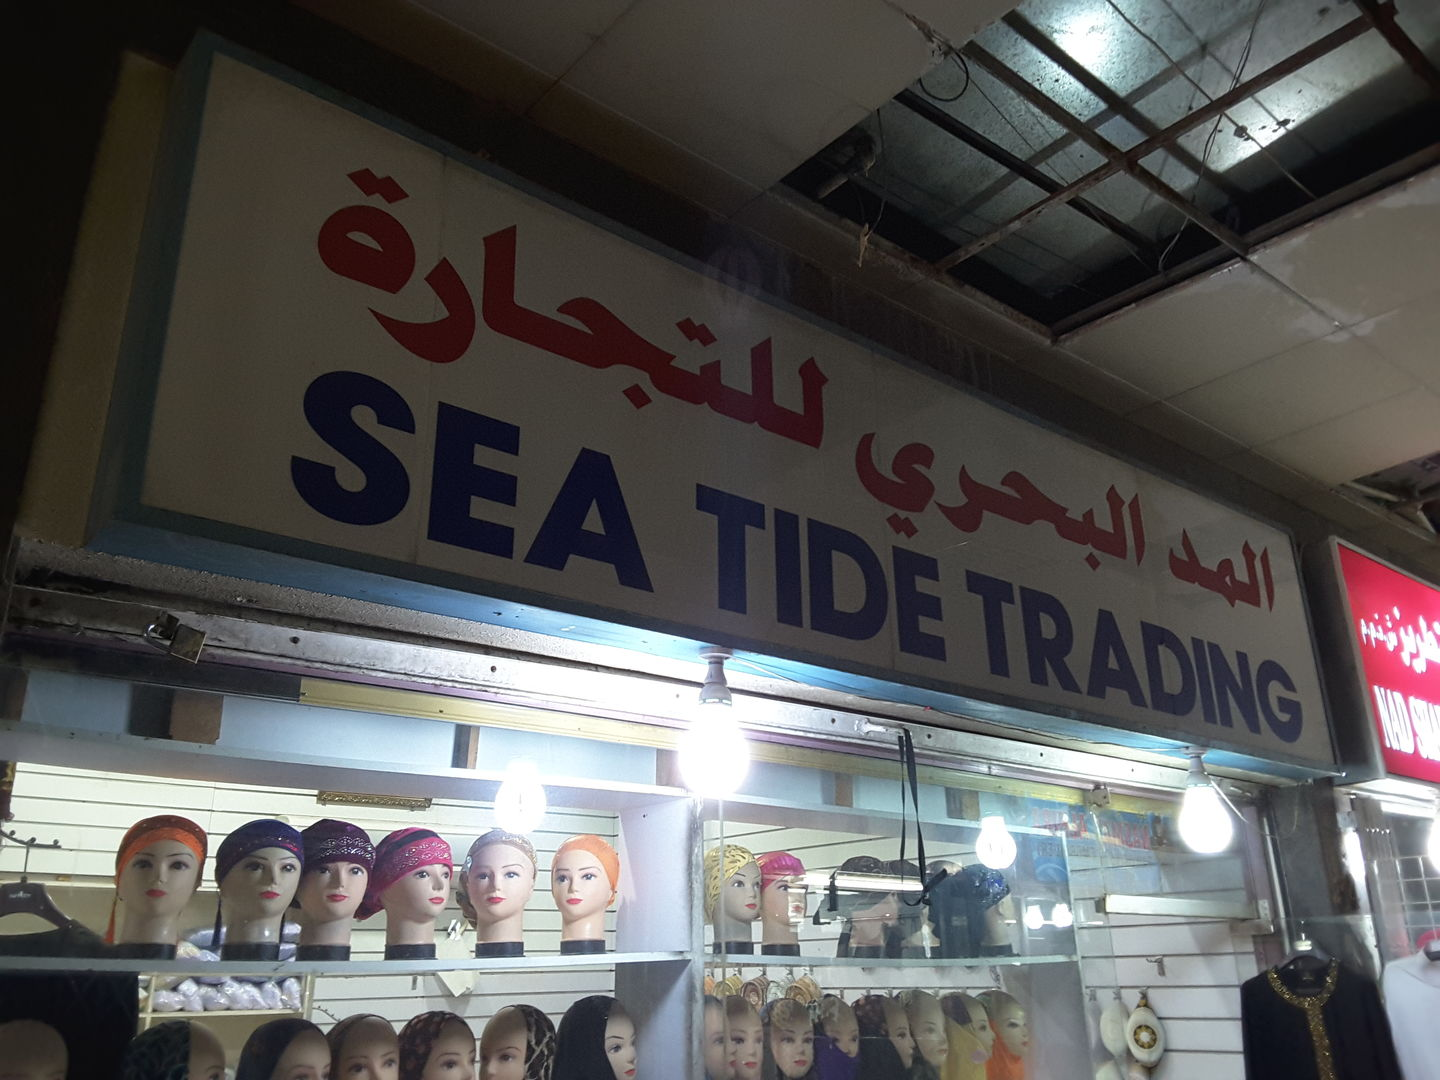 HiDubai-business-sea-tide-trading-b2b-services-distributors-wholesalers-ayal-nasir-dubai-2